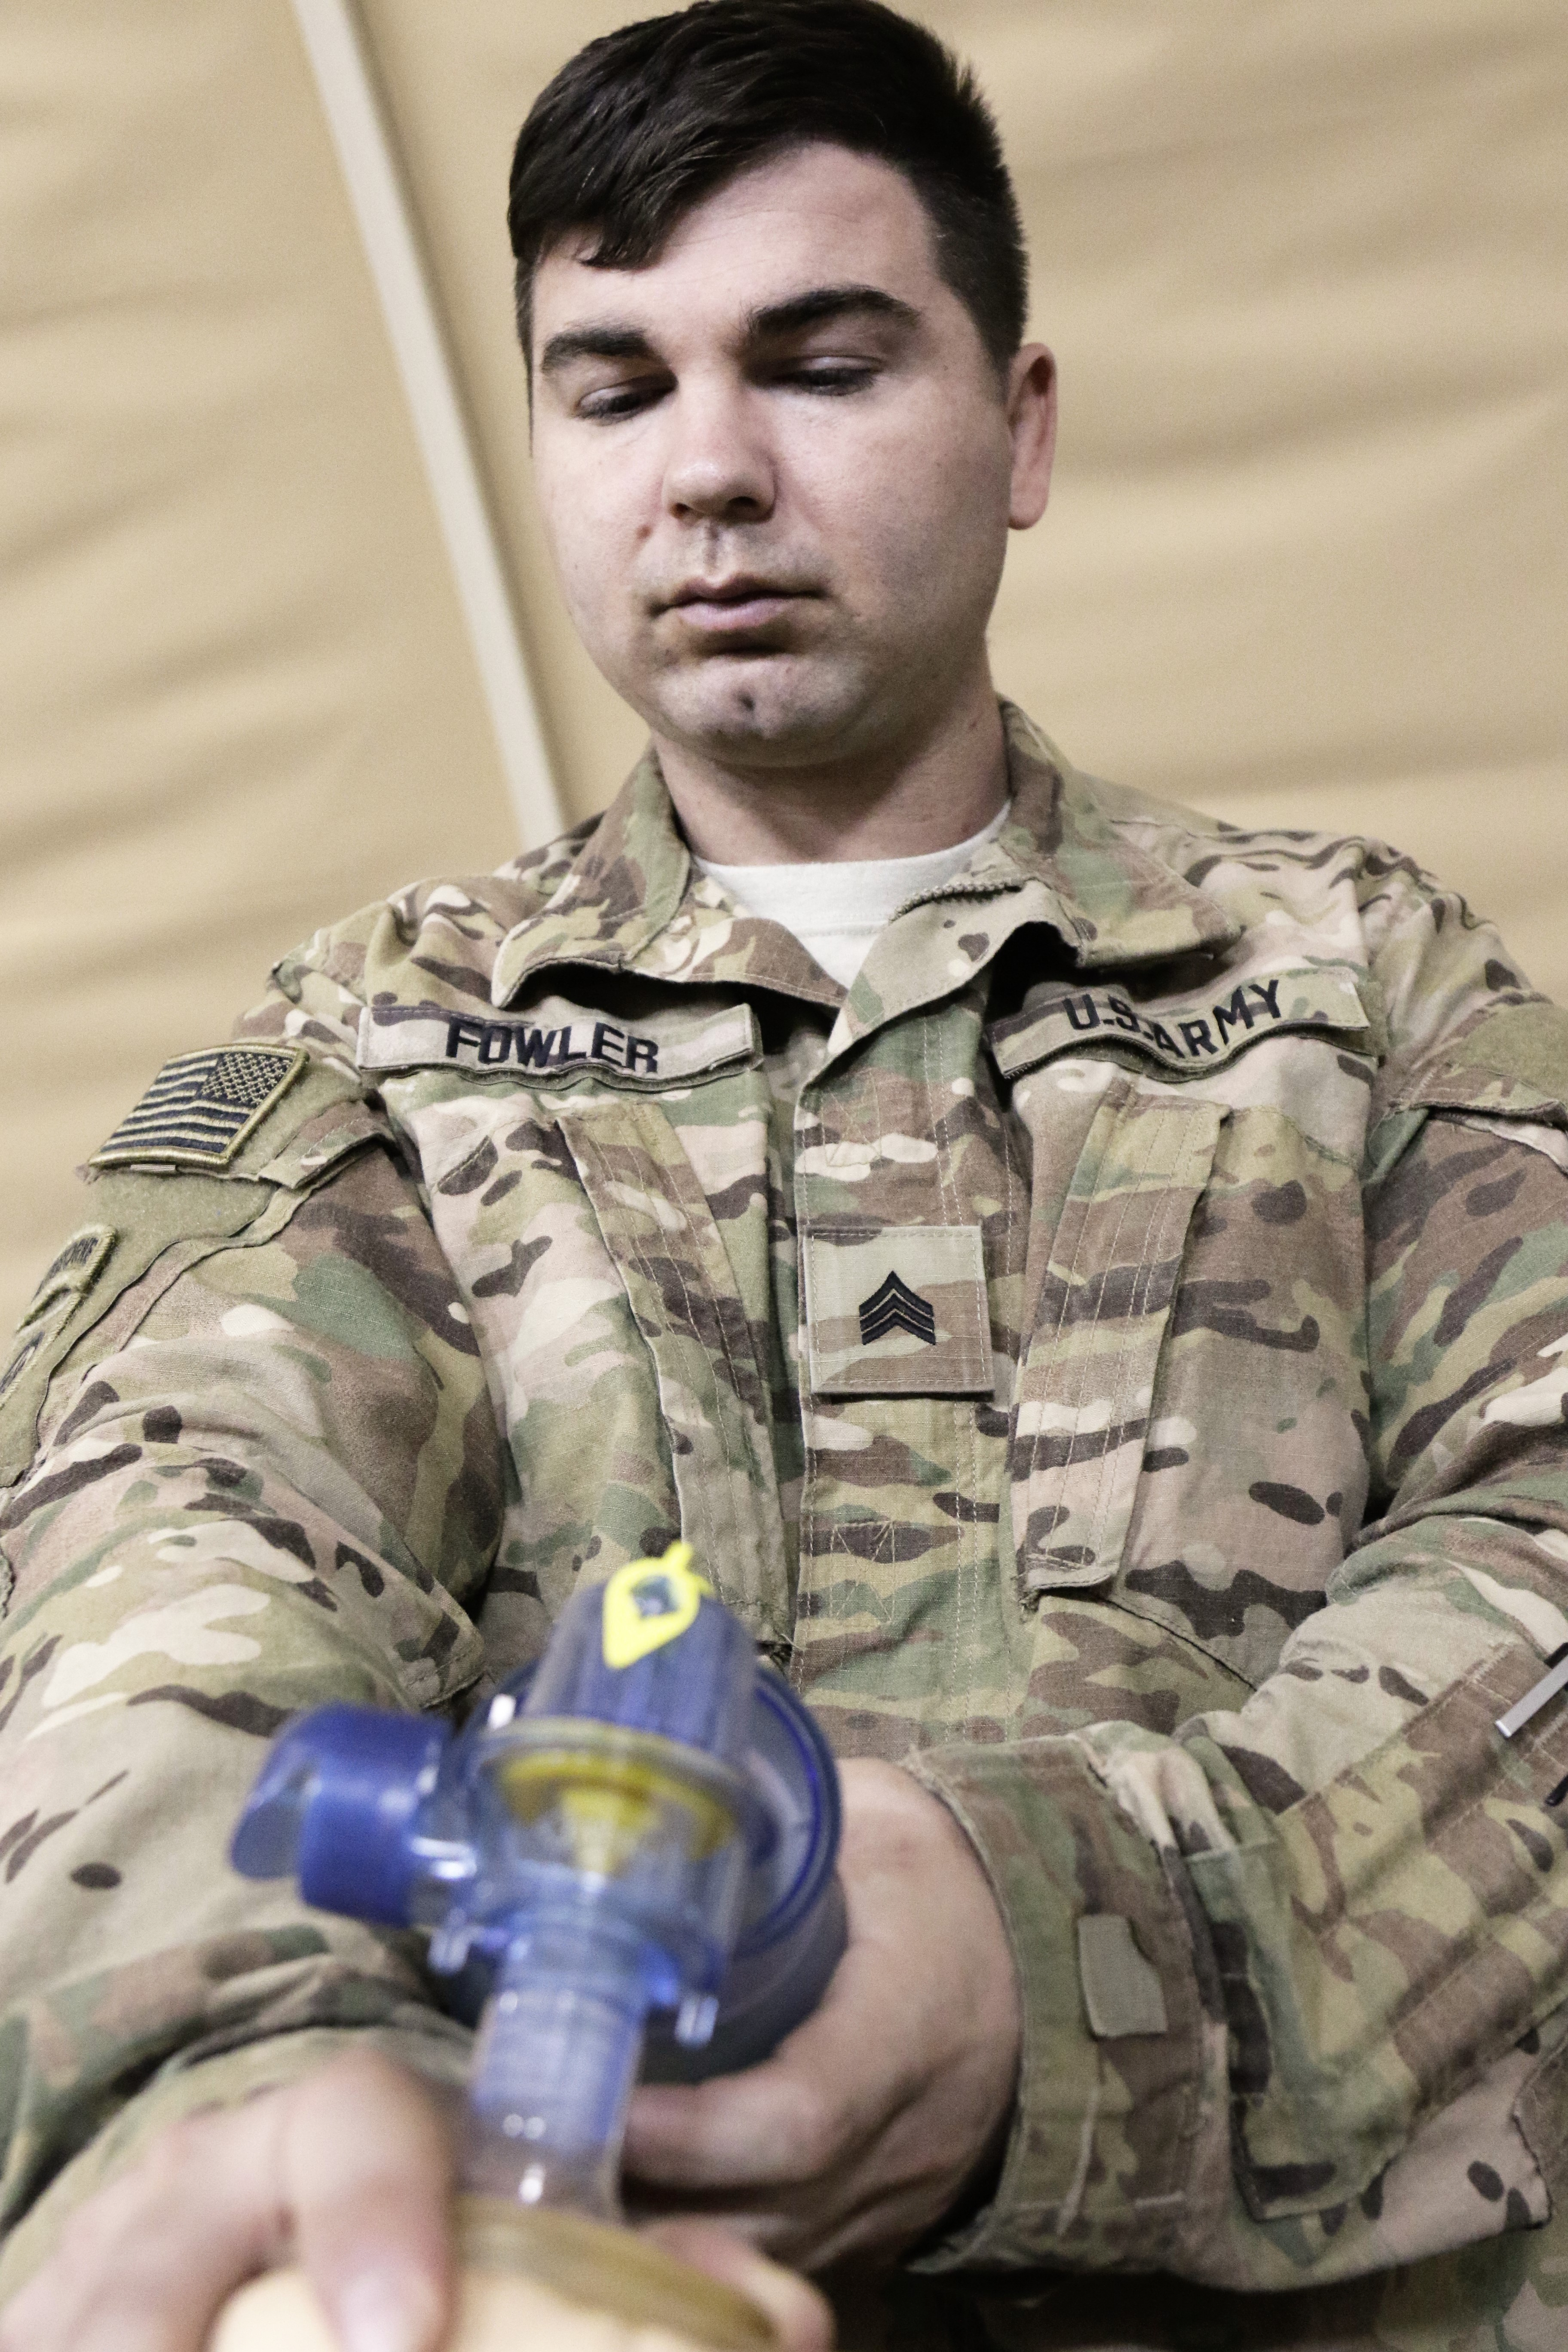 Sustaining Cpr Skills Article The United States Army